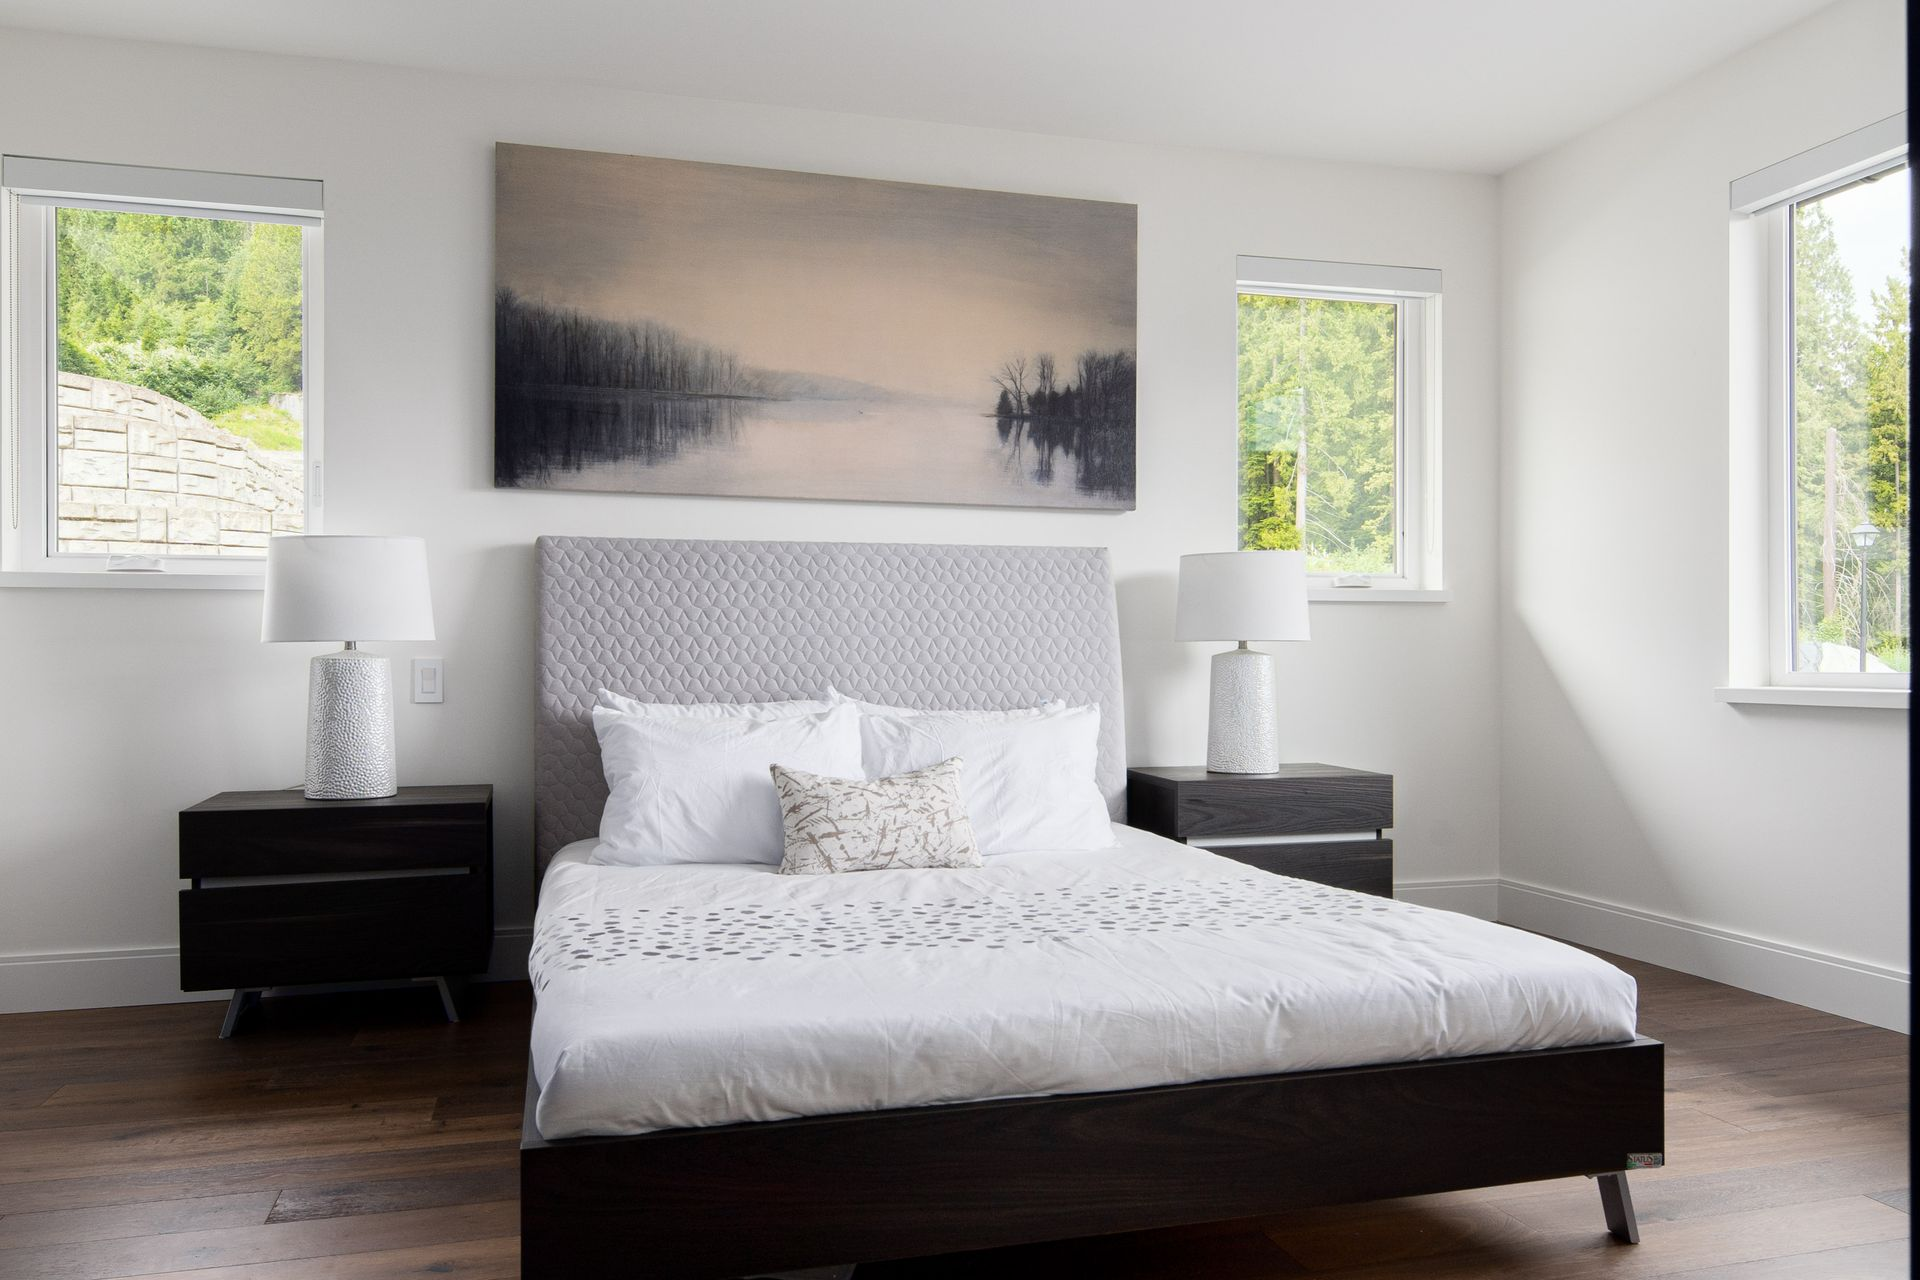 union-crt-2121-west-vancouver-tandy-gao-staging-24 at 2121 Union Court, Panorama Village, West Vancouver